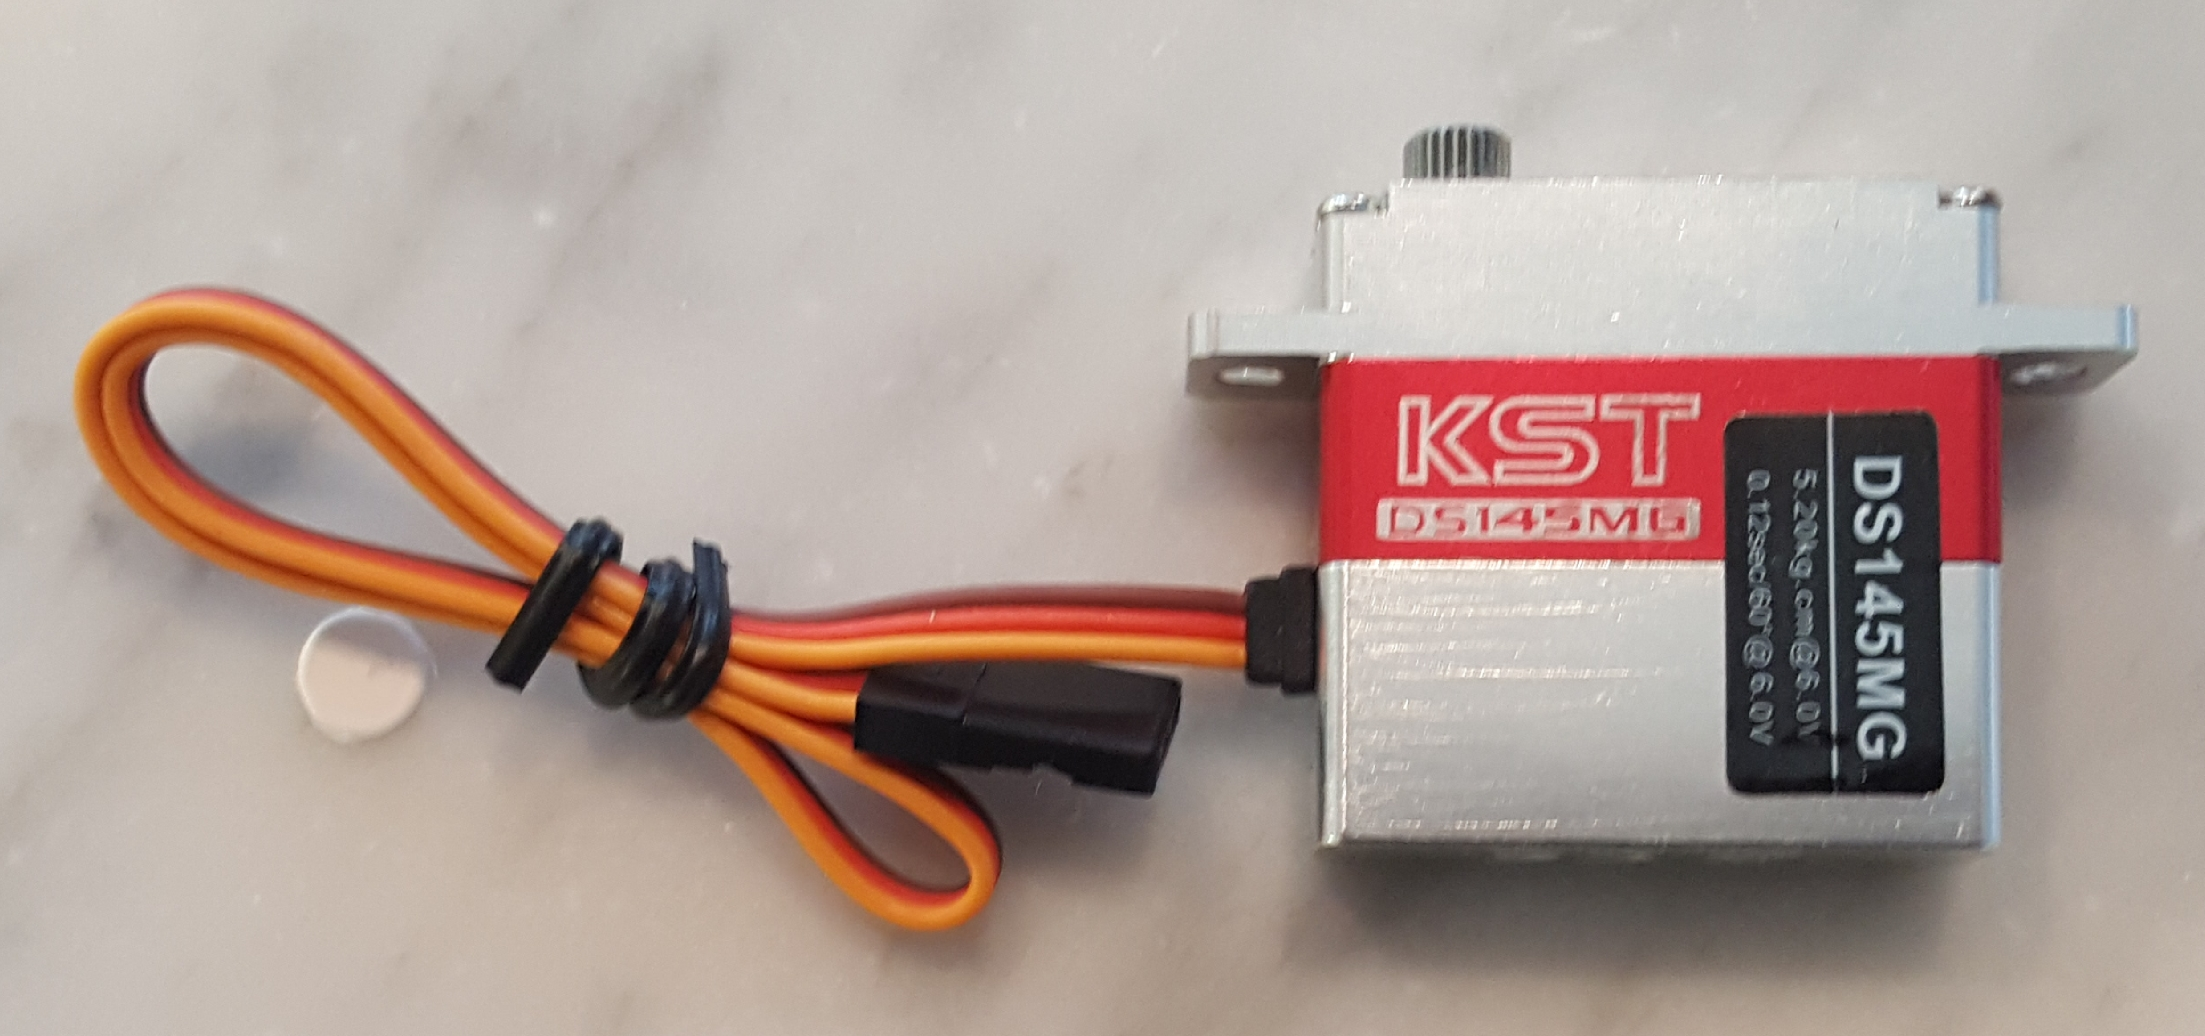 KST DS145MG Digital HT Servo